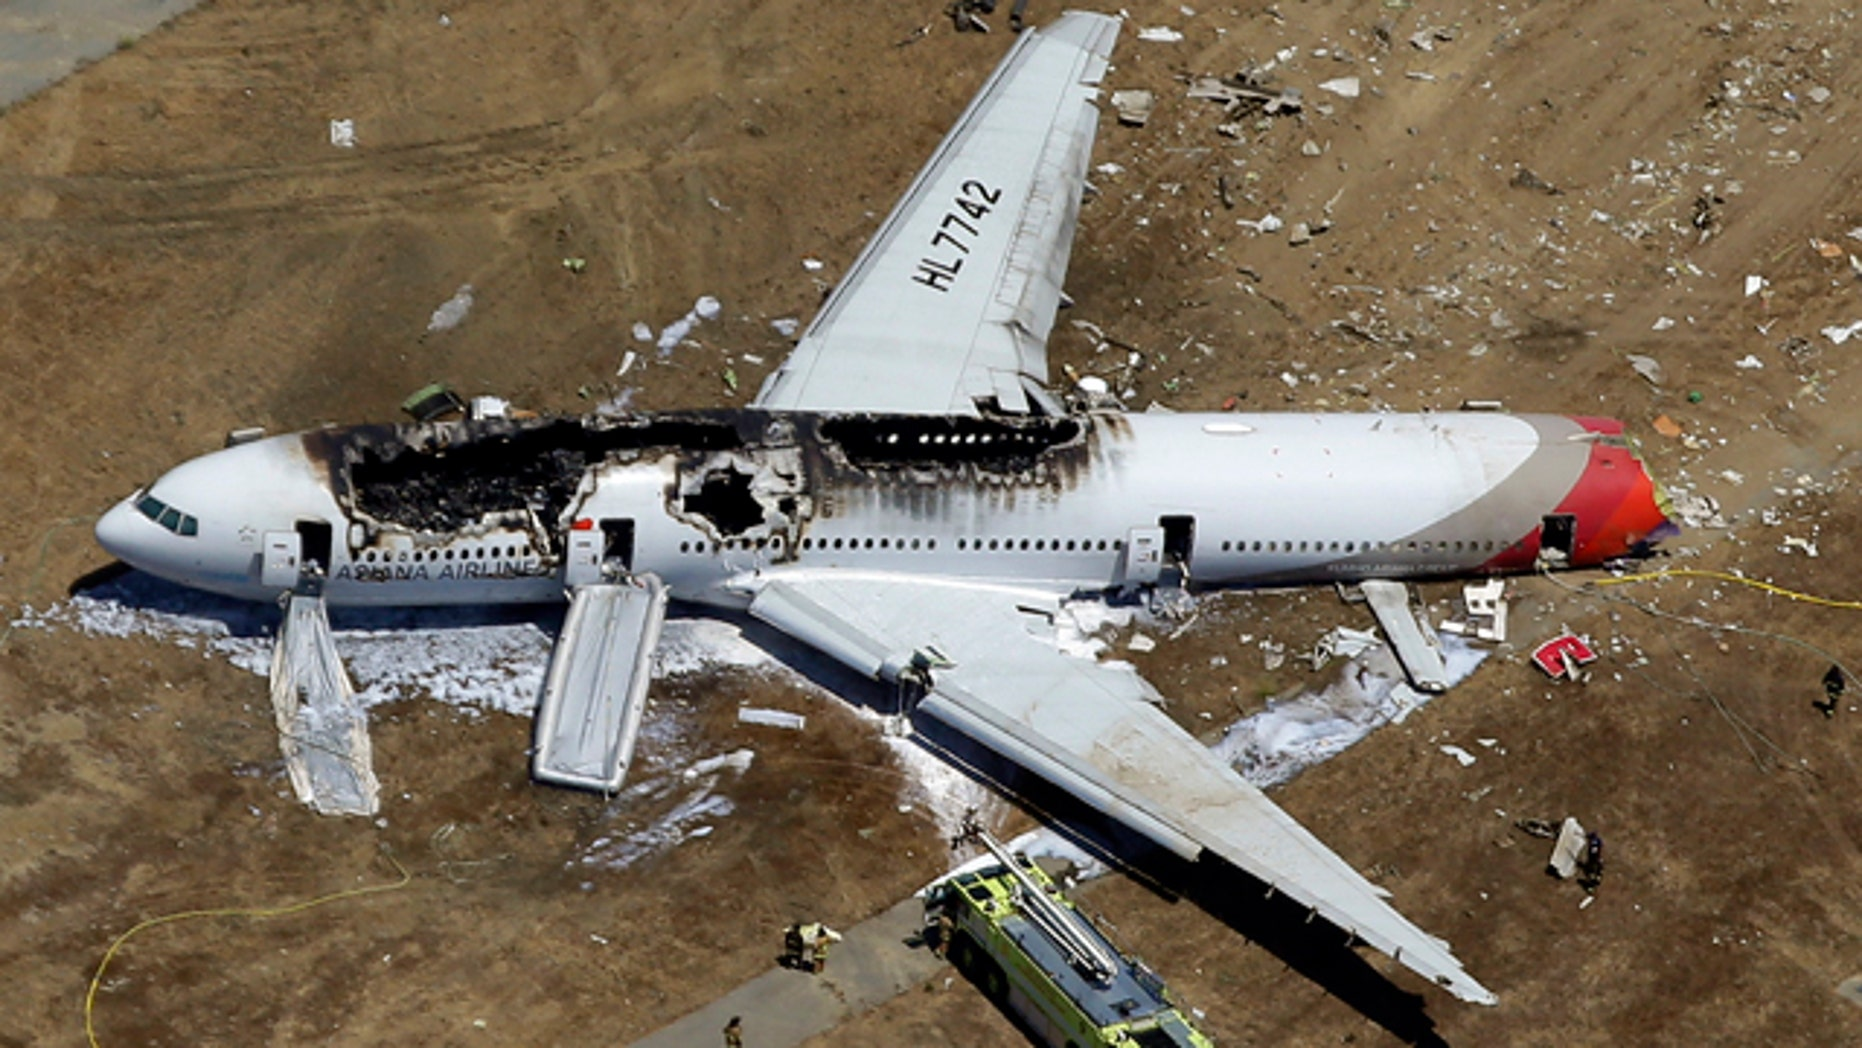 FILE - In this July 6, 2013 aerial file photo, the wreckage of Asiana